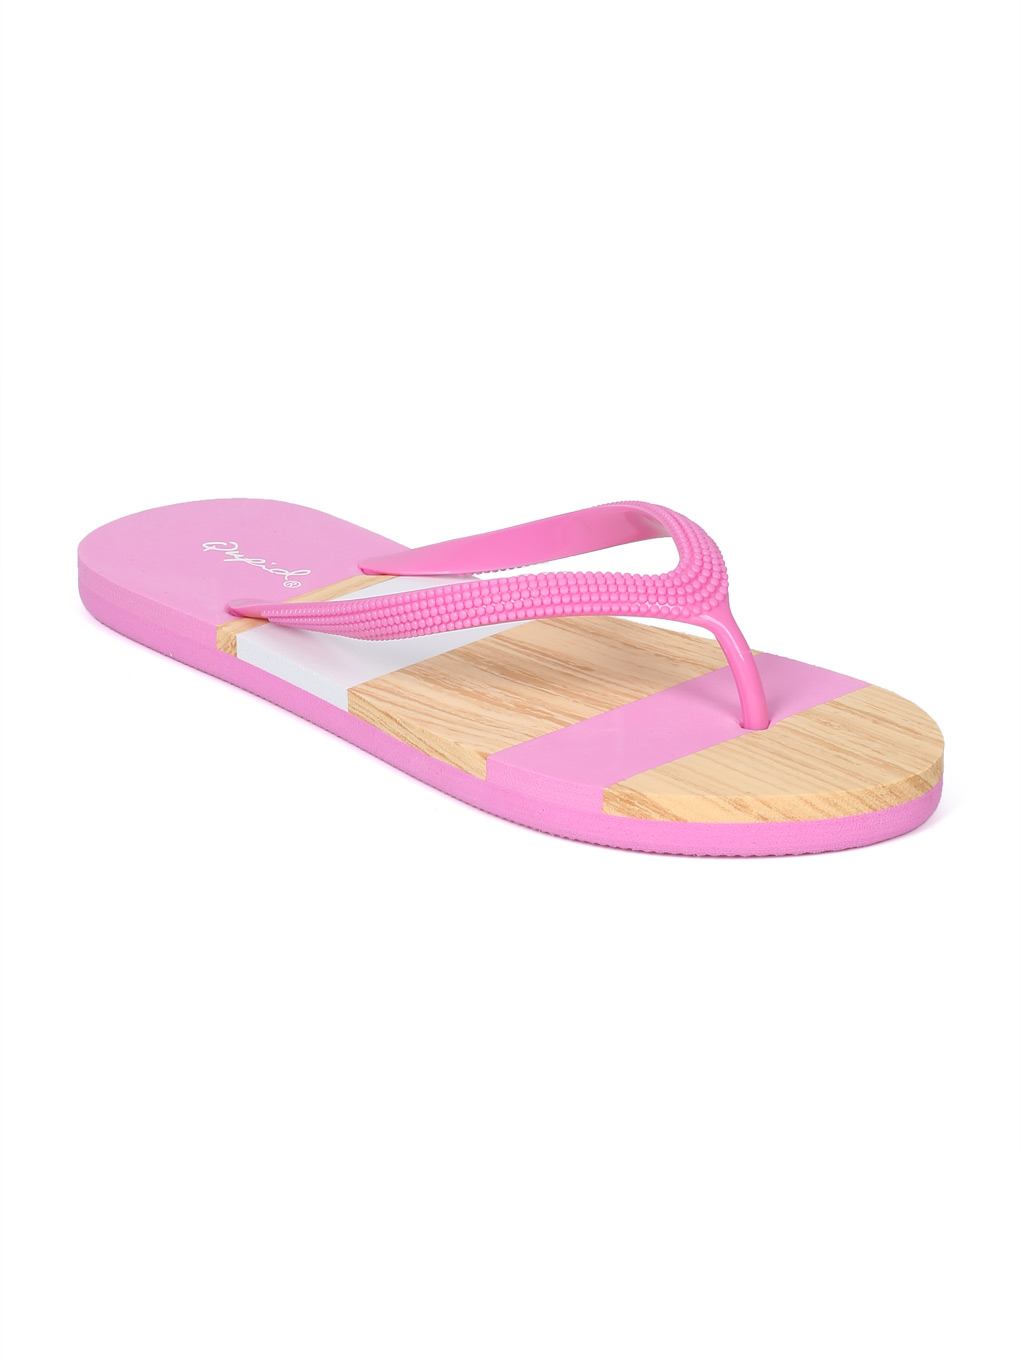 beb24c8a87a0 Alrisqd - Women PFC Faux Wood Striped Thong Sandal HH46 ...